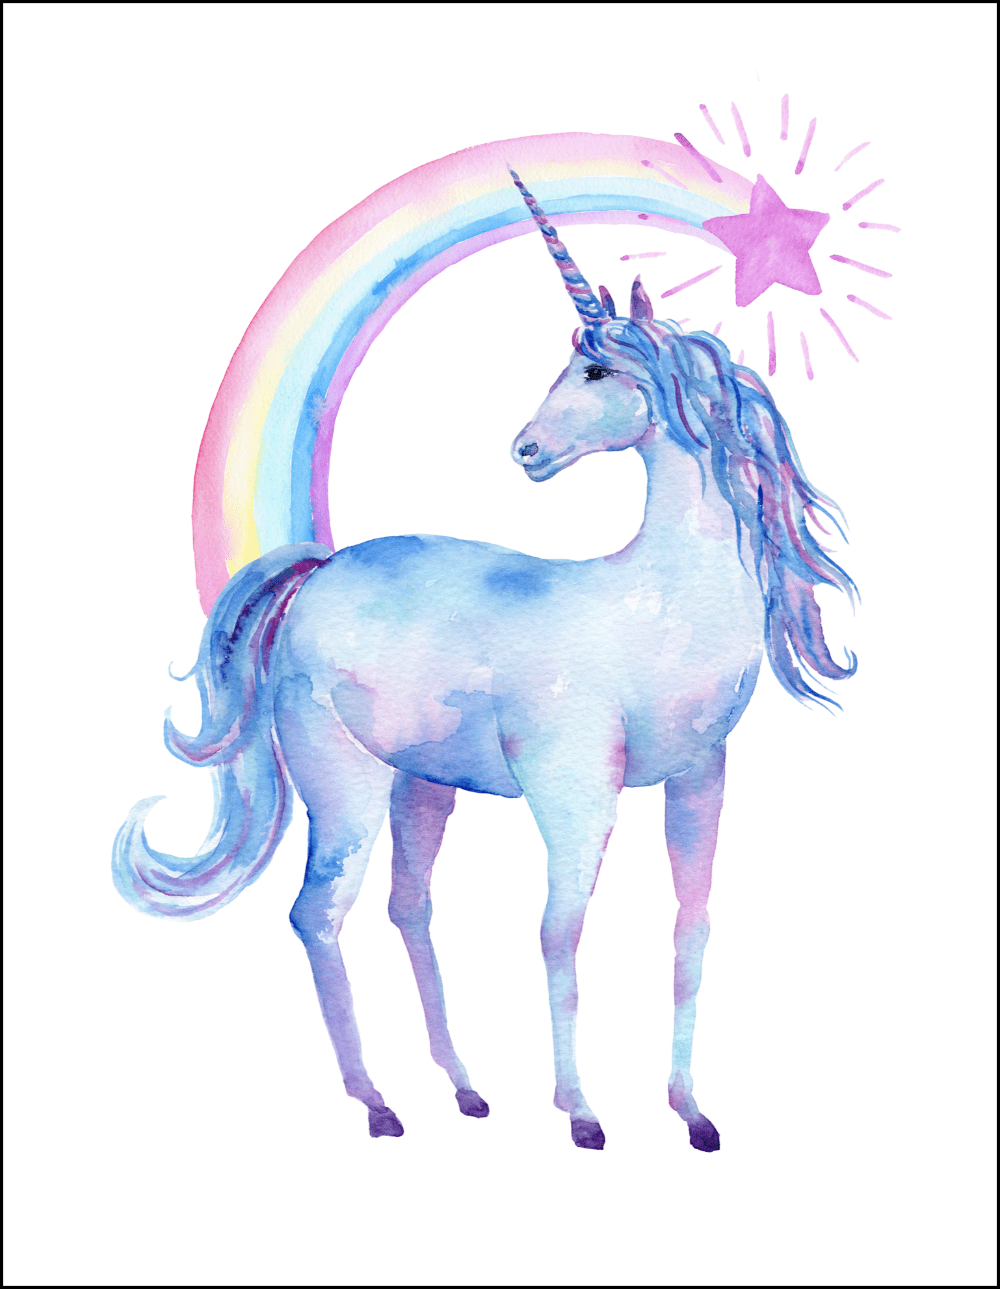 photograph about Printable Pictures of Unicorns identify Free of charge Printable Watercolor Unicorn Pics - Oh My Imaginative